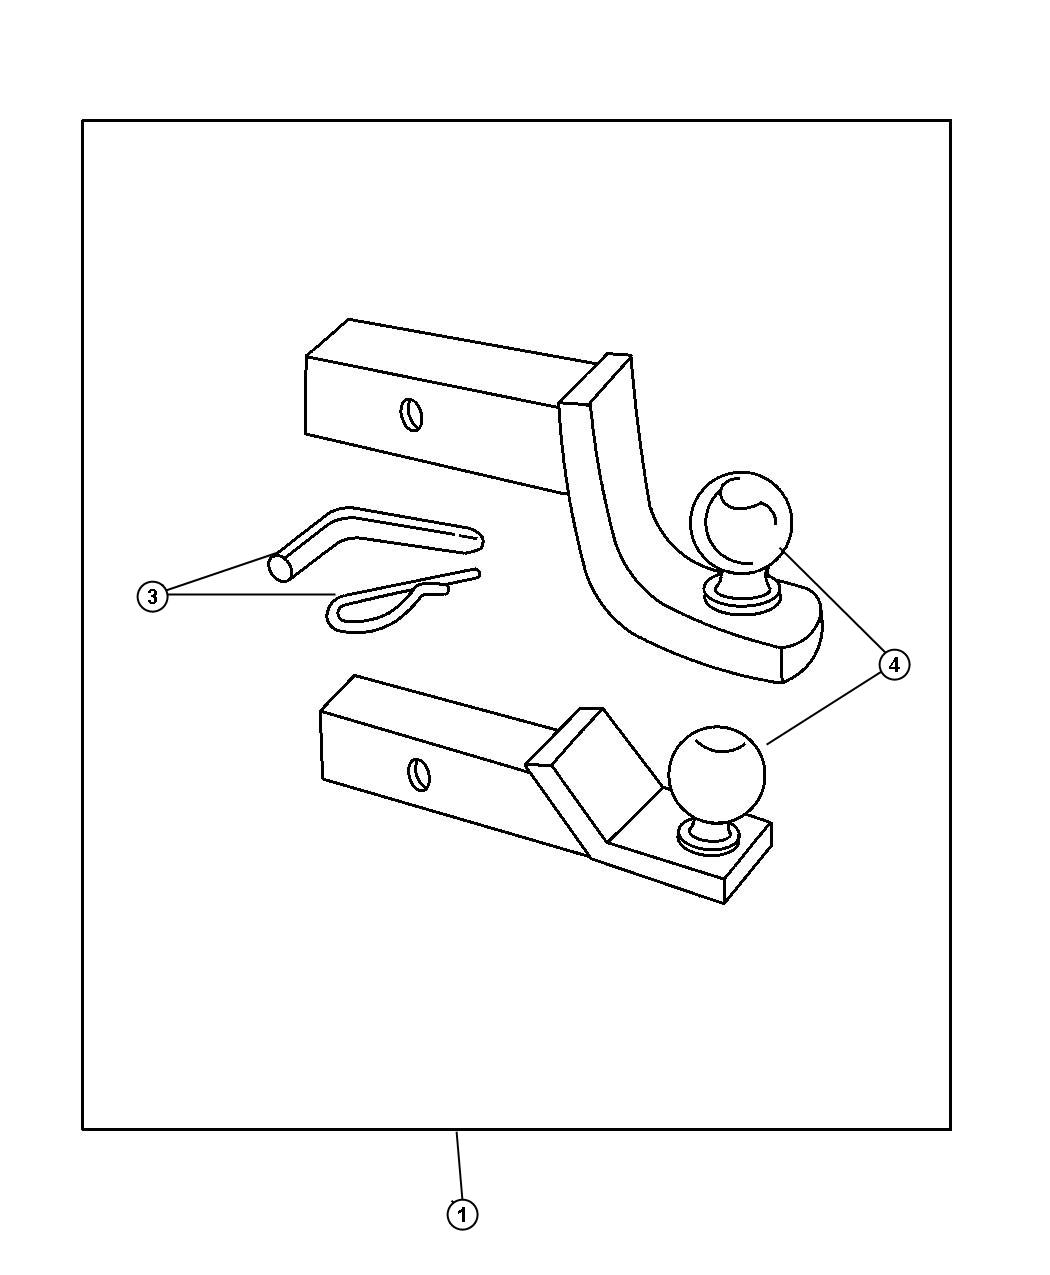 Adapter Kit - Ball Mount. Diagram